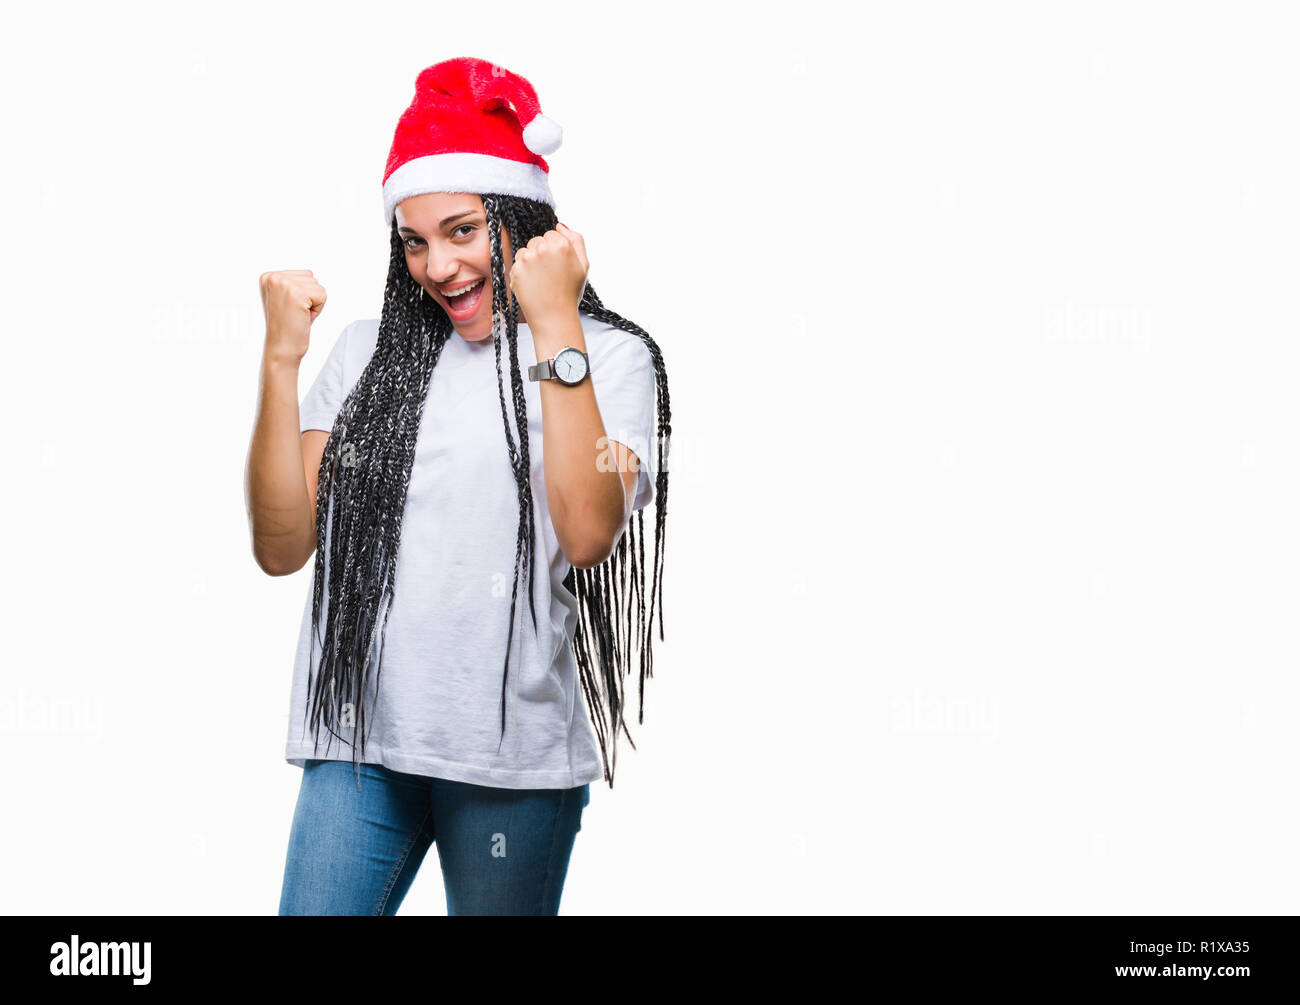 Young braided hair african american girl wearing christmas hat over isolated background very happy and excited doing winner gesture with arms raised,  - Stock Image